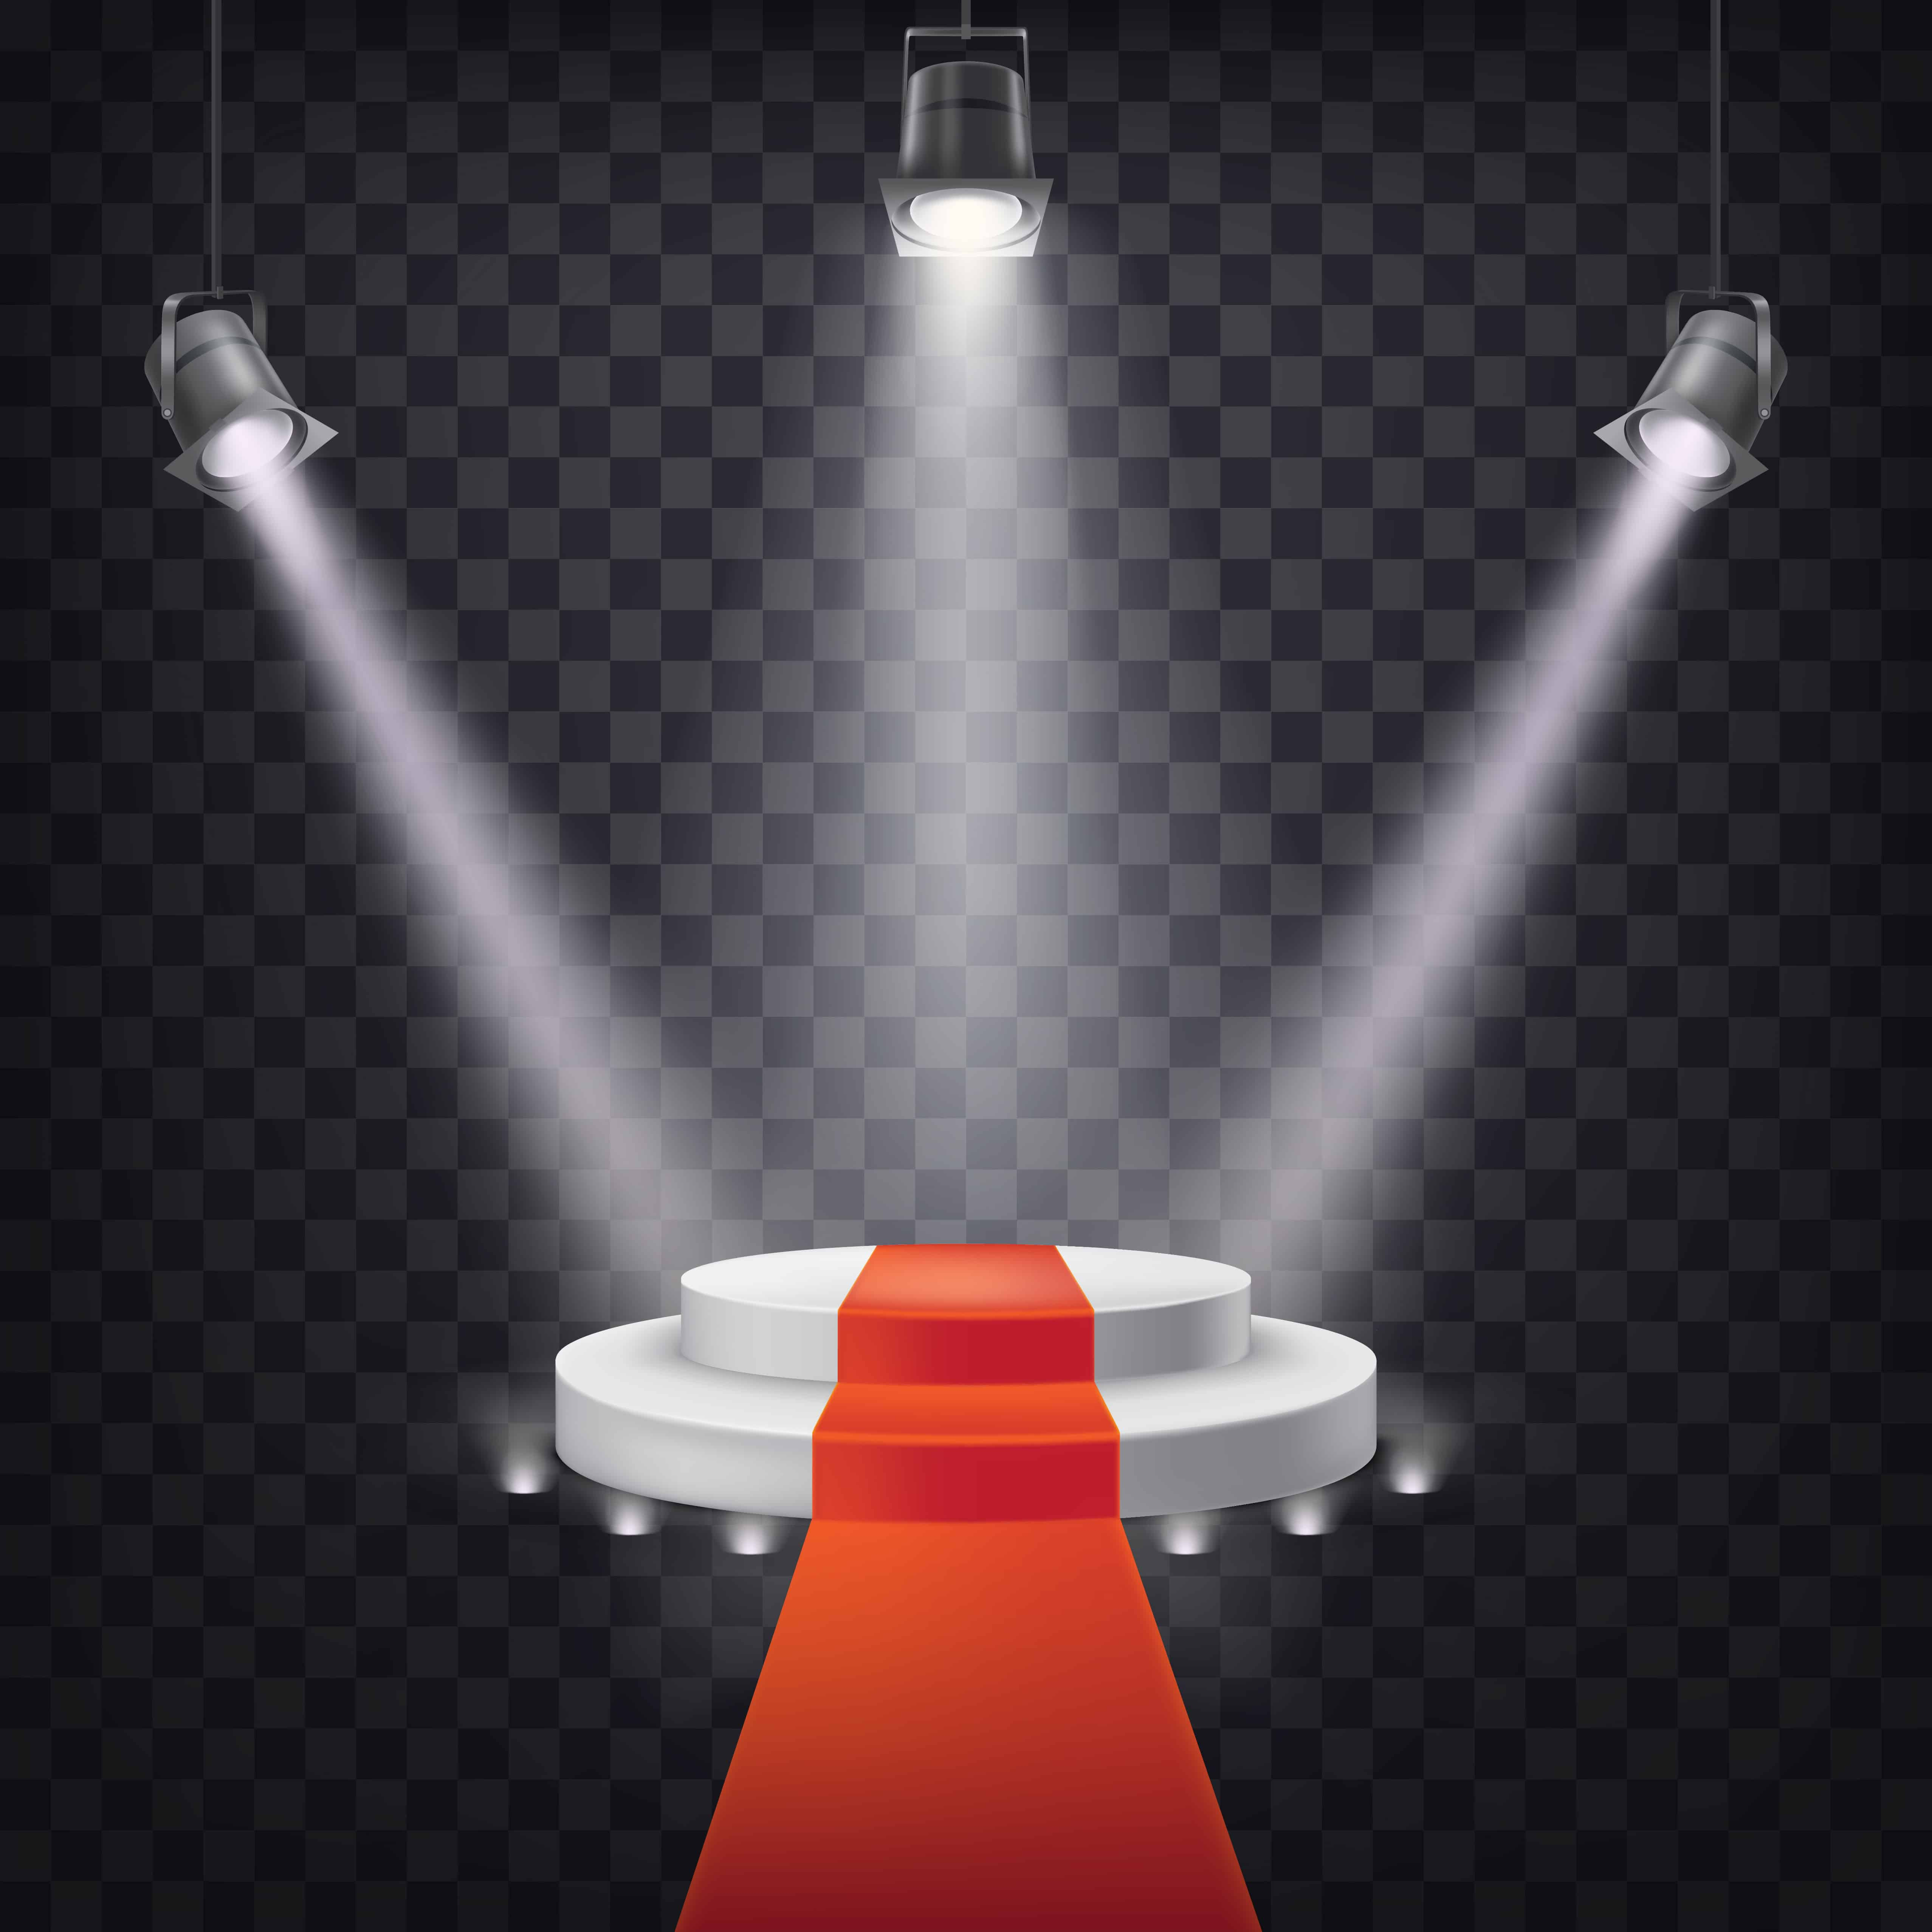 Set of vector scenic spotlights on a dark background with a podium and red carpet